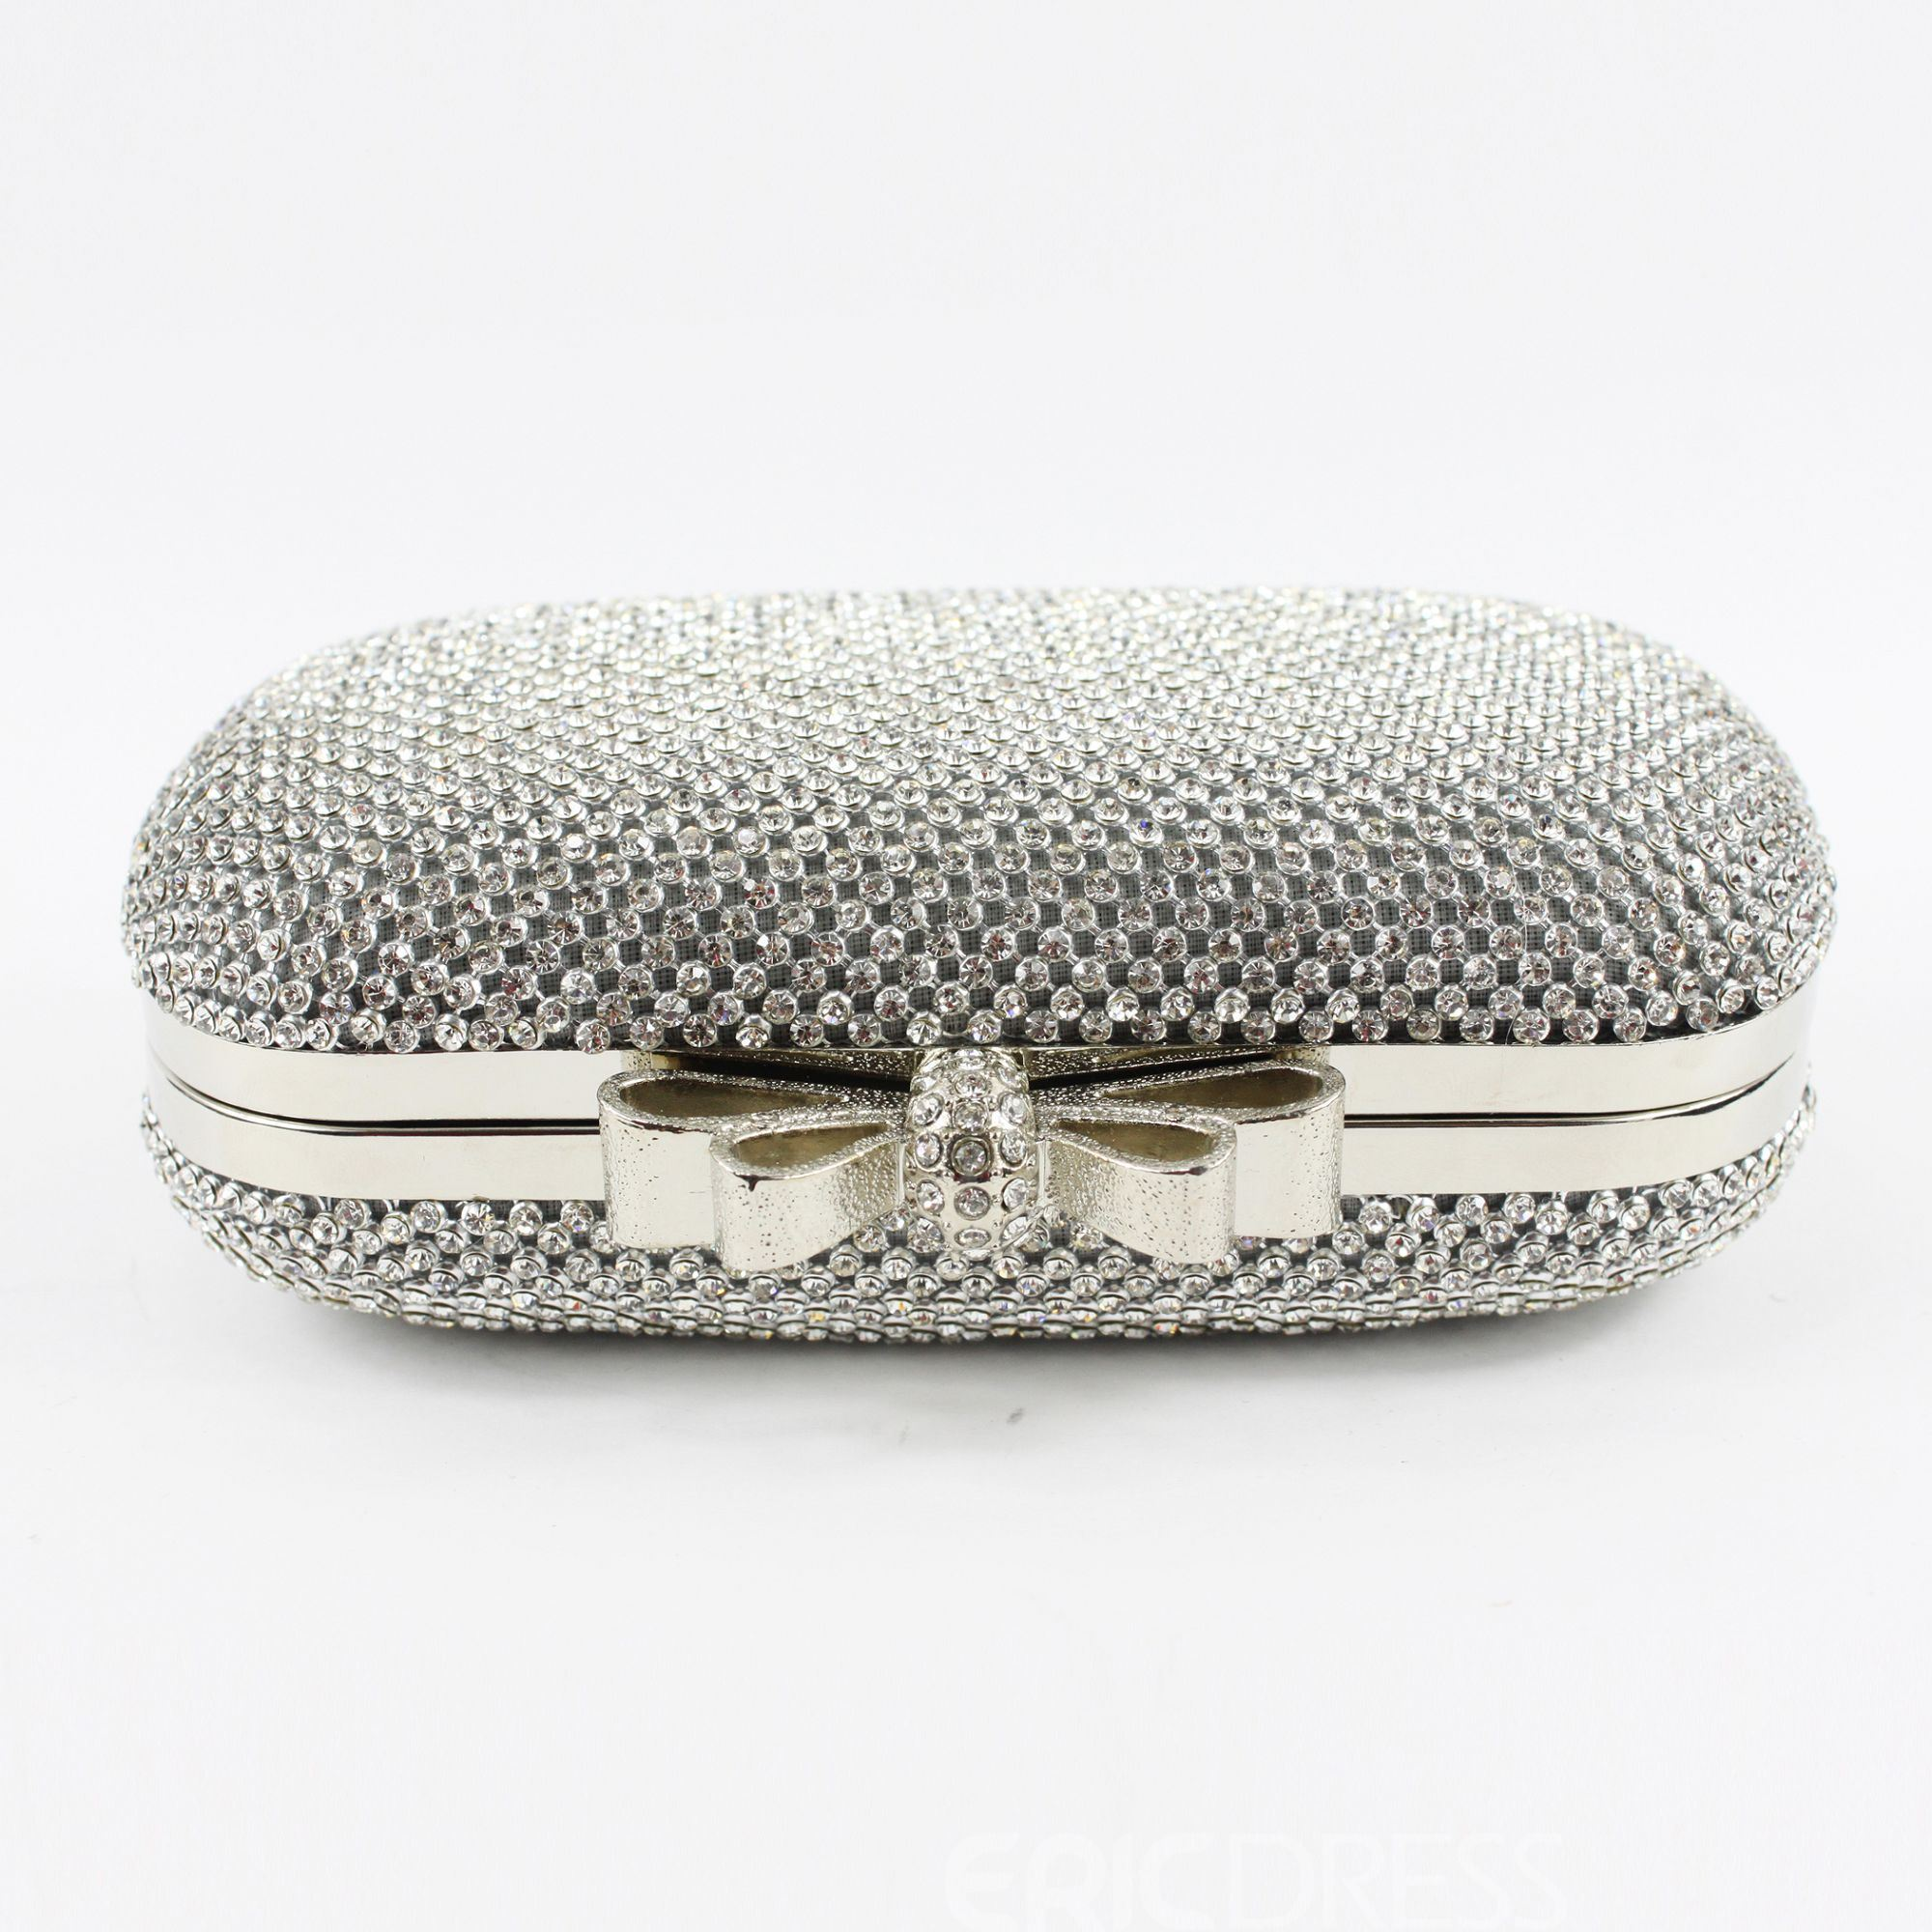 Ericdress Exquisite Fully Diamante Evening Clutches